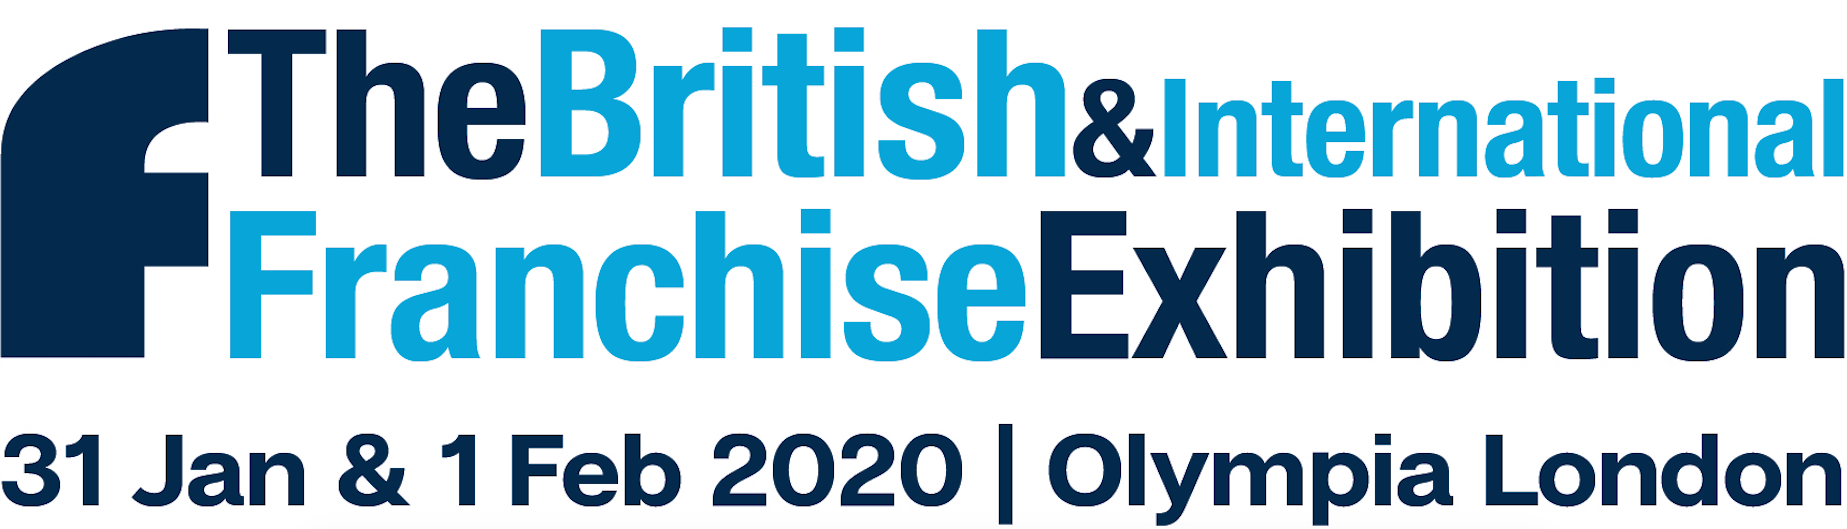 The British & International Franchise Exhibition logo